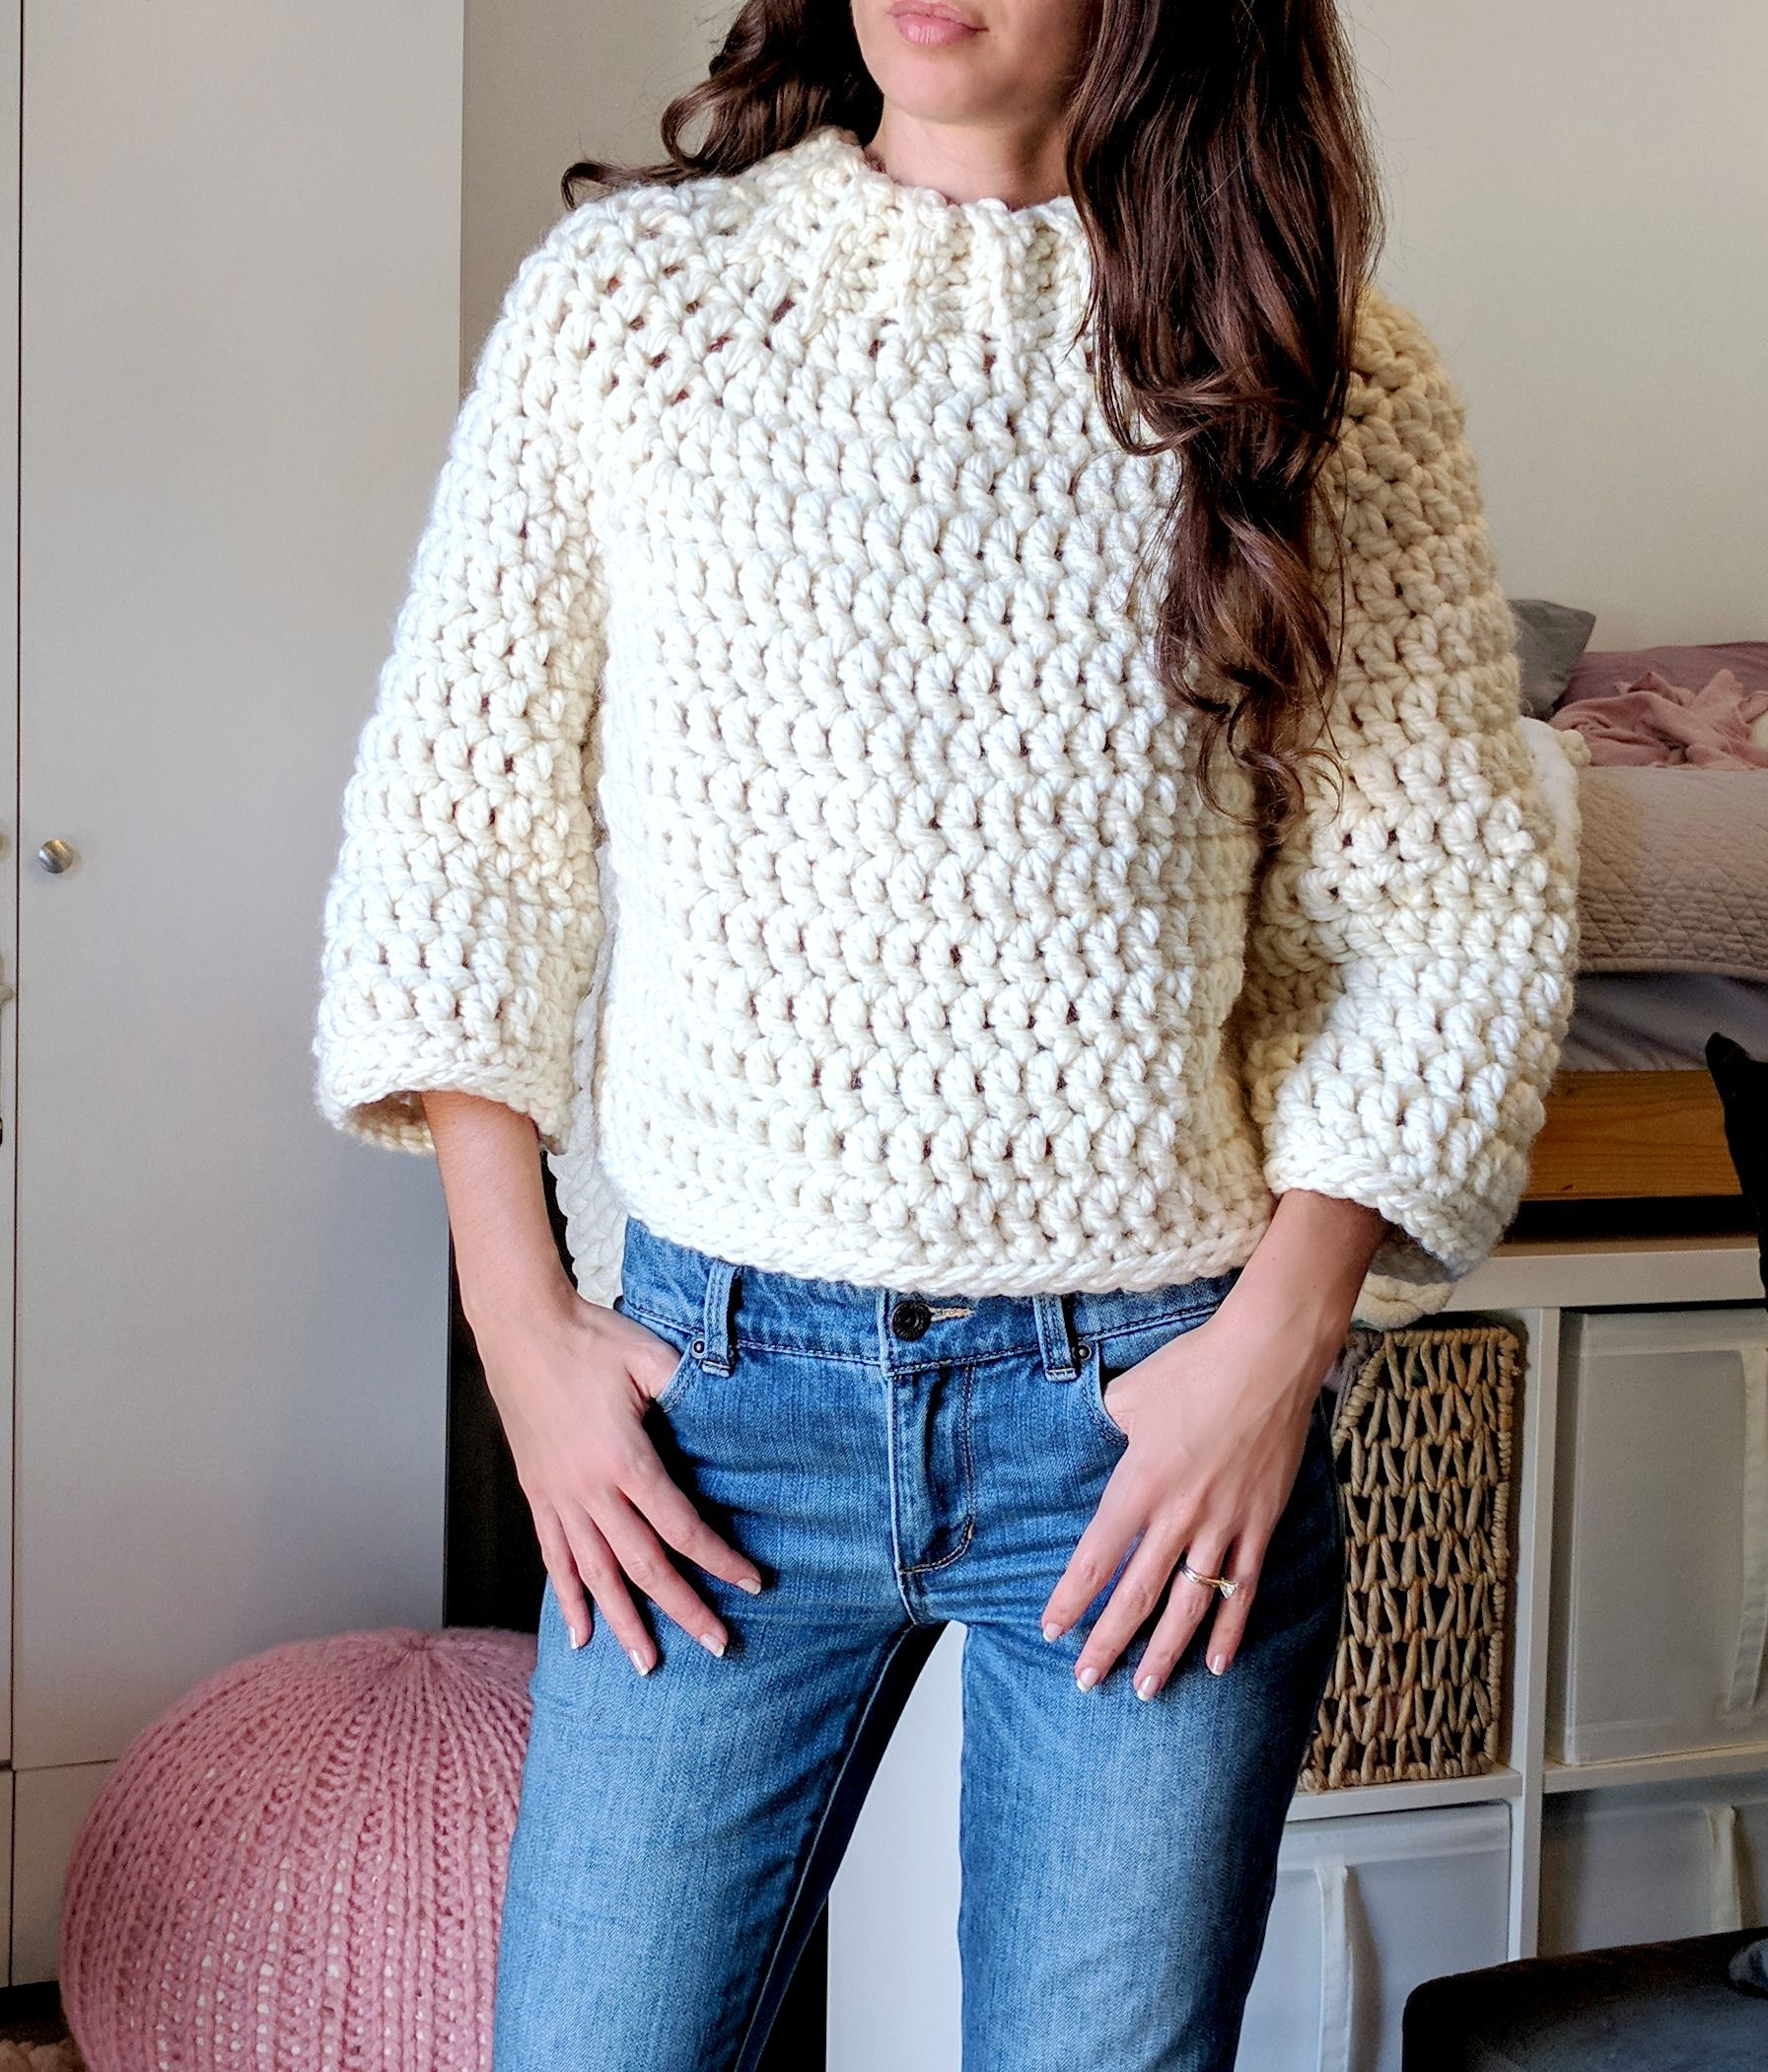 Chunky Cropped Crochet Sweater Pattern | ✽ Support Small ...